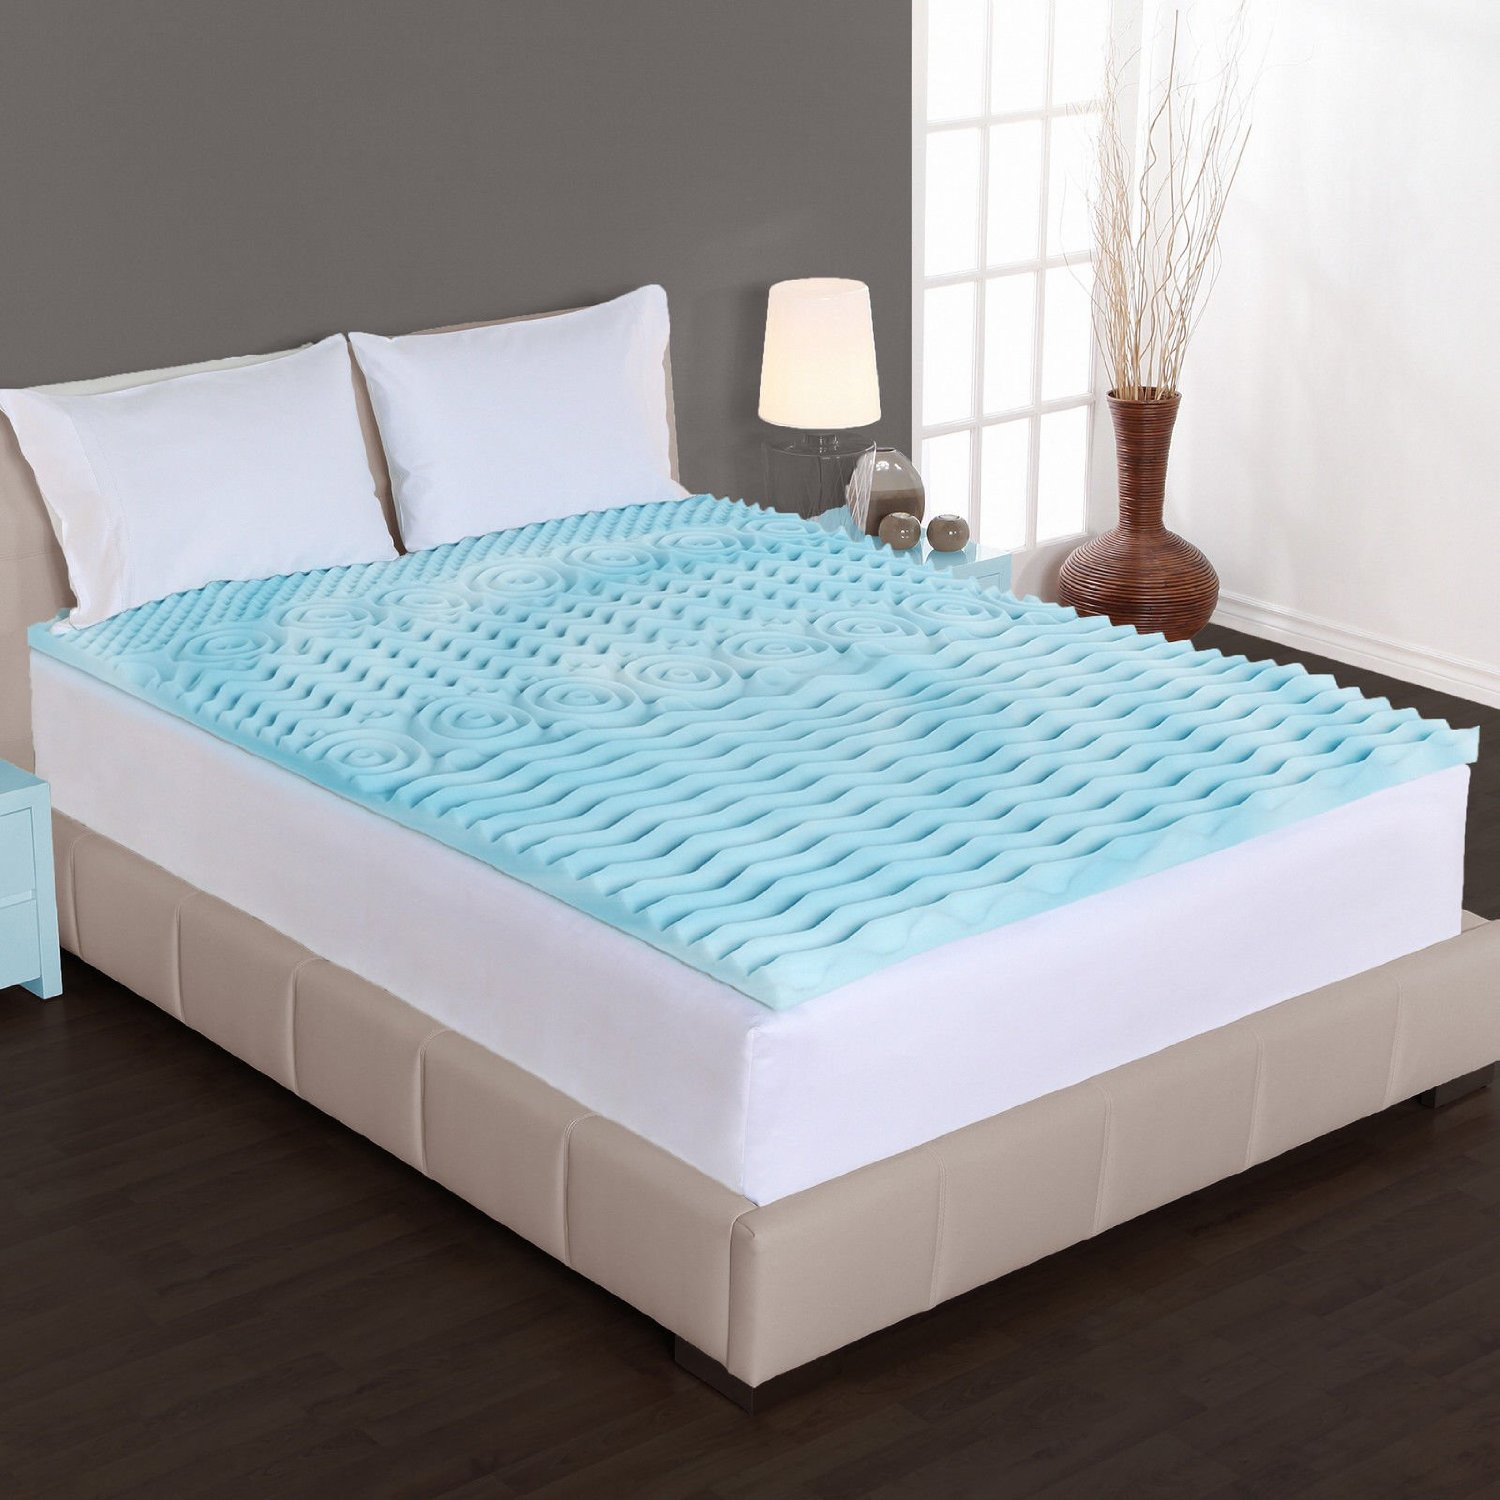 Thin Mattress Topper Cooling Mattress Pad For Tempur Pedic That Will Make You